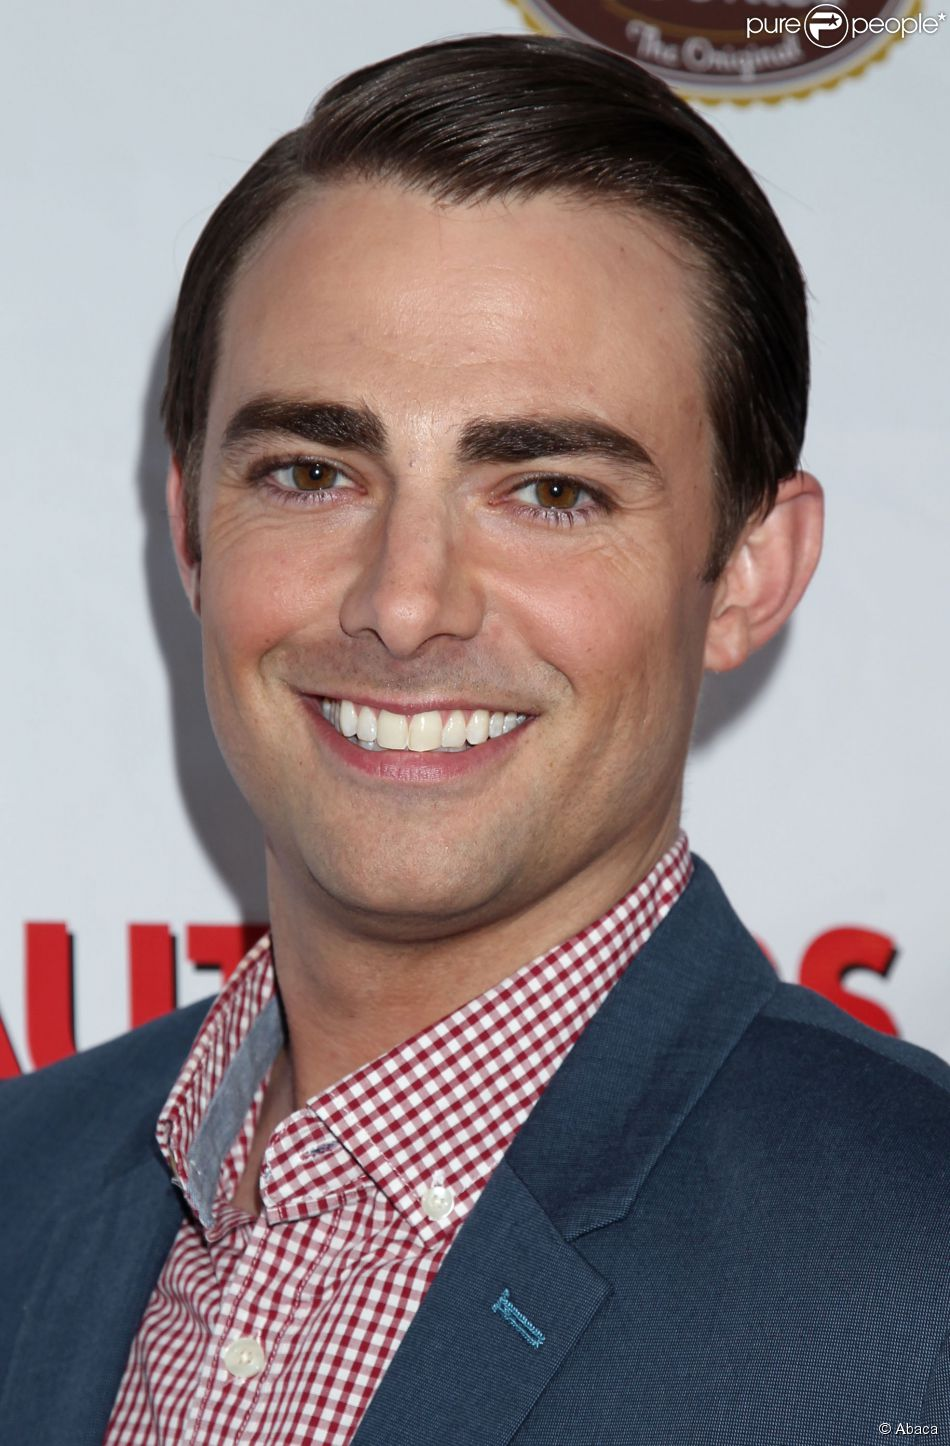 jonatthan bennett article 15 celebrities you didn't know were gay jonathan bennett jonathan bennett was famous for starring aaron samuels in the 2002 comedy film mean girls we may hate to burst your bubble here, but jonathan bennett is gay, and his ex-boyfriend was matt dallas 4.